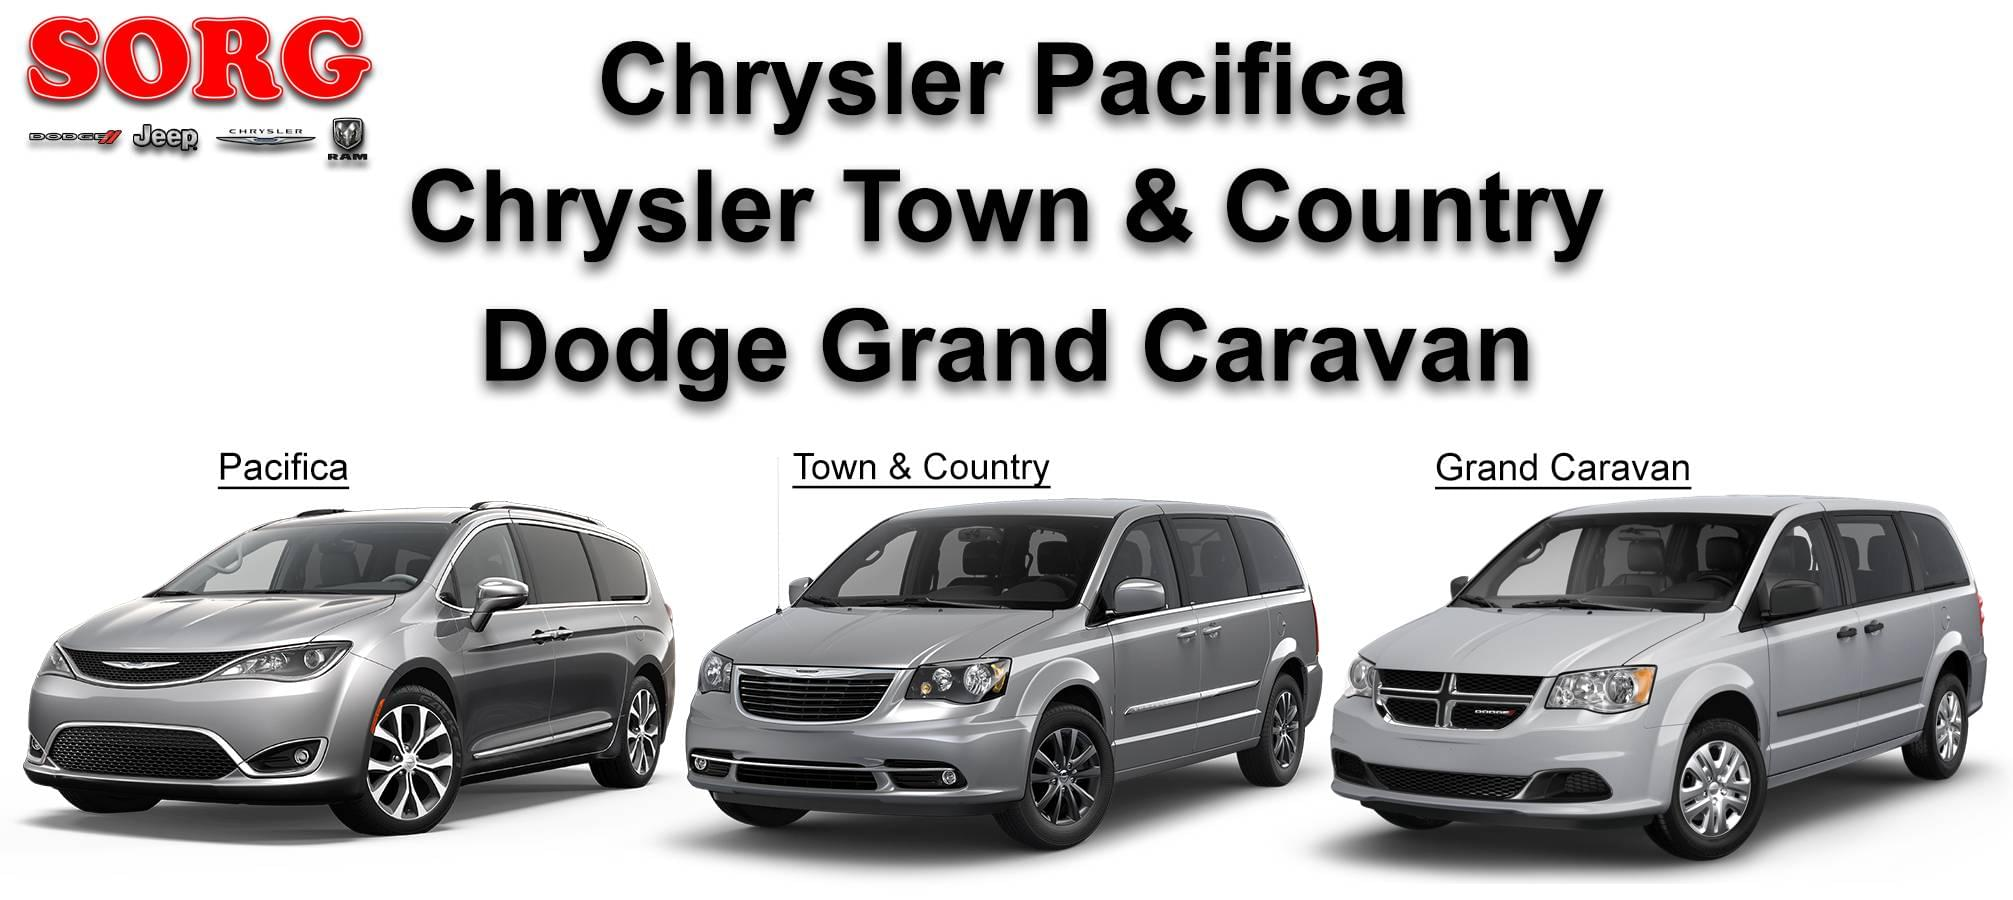 2017 Chrysler Town And Country >> Comprehensive Review Chrysler Pacifica Chrysler Town